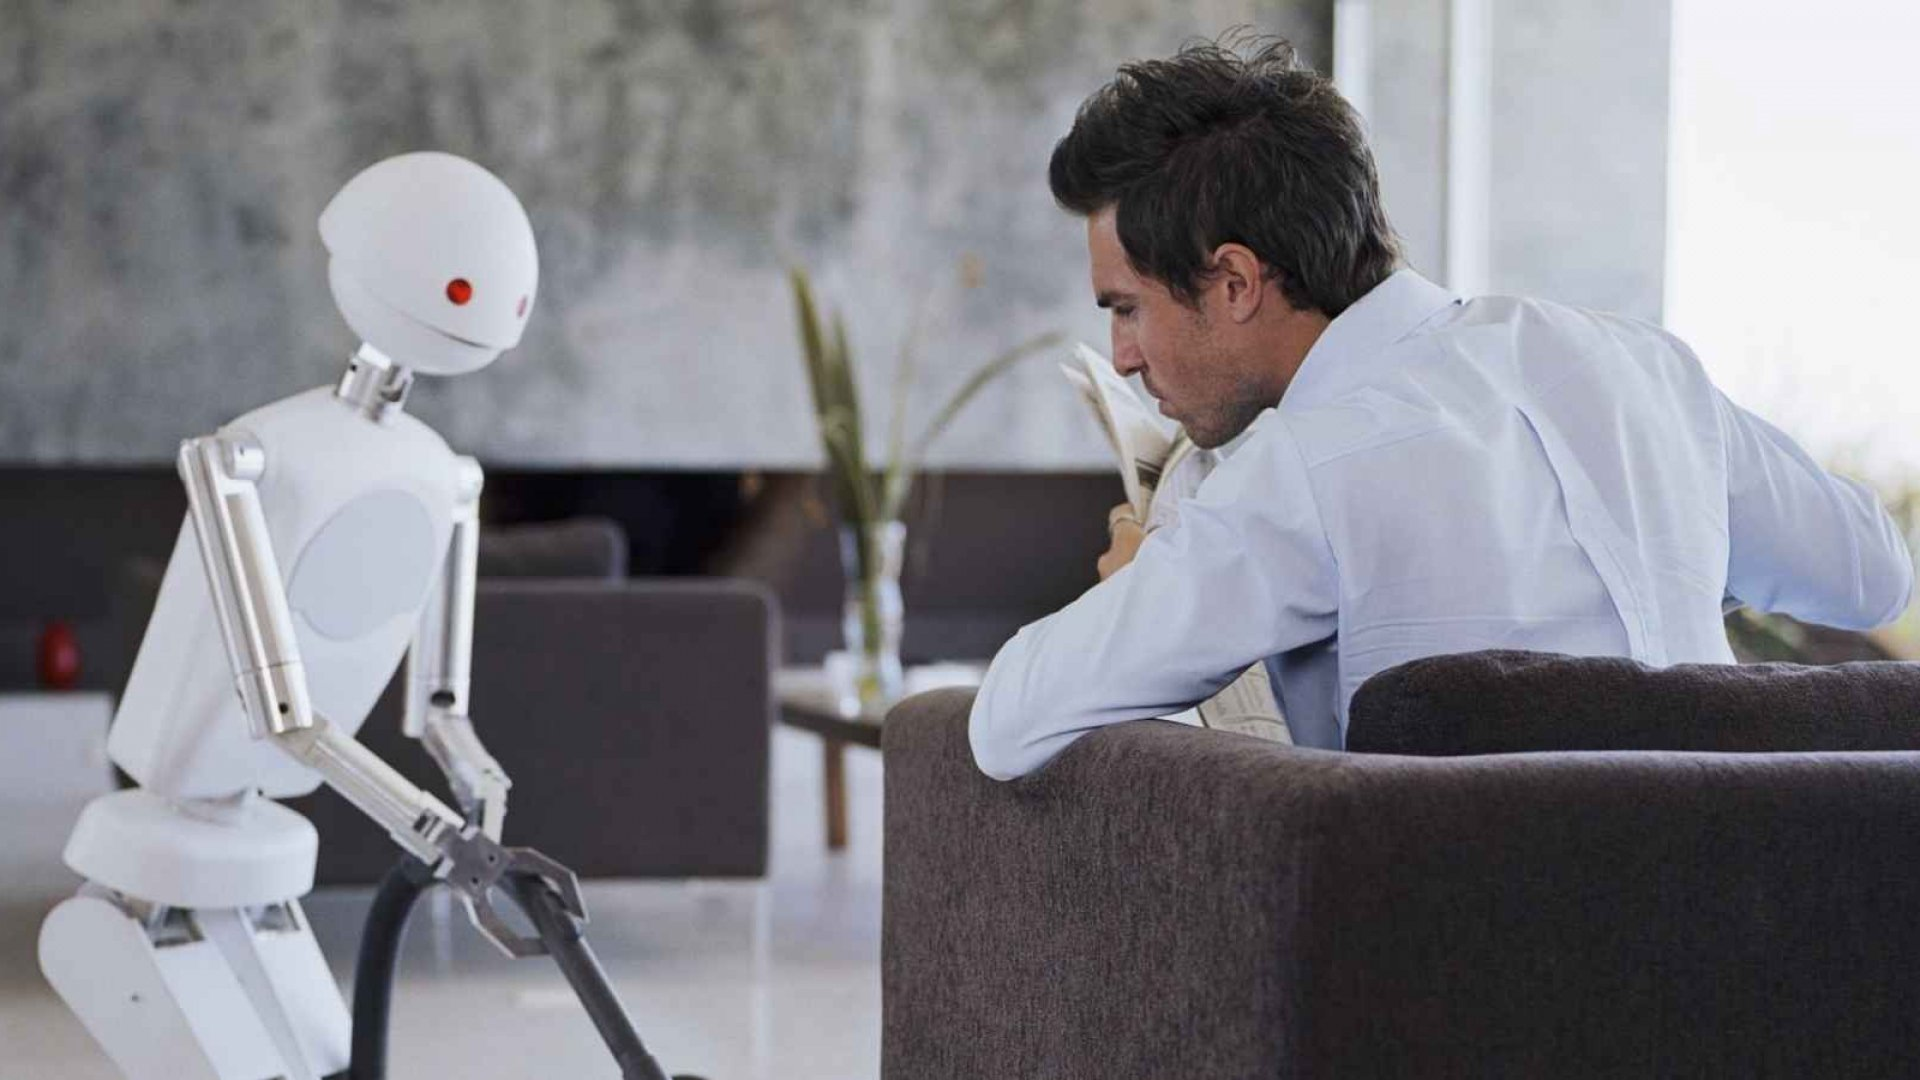 Robots Are Saying 'No' to Humans, but That's Not the Problem